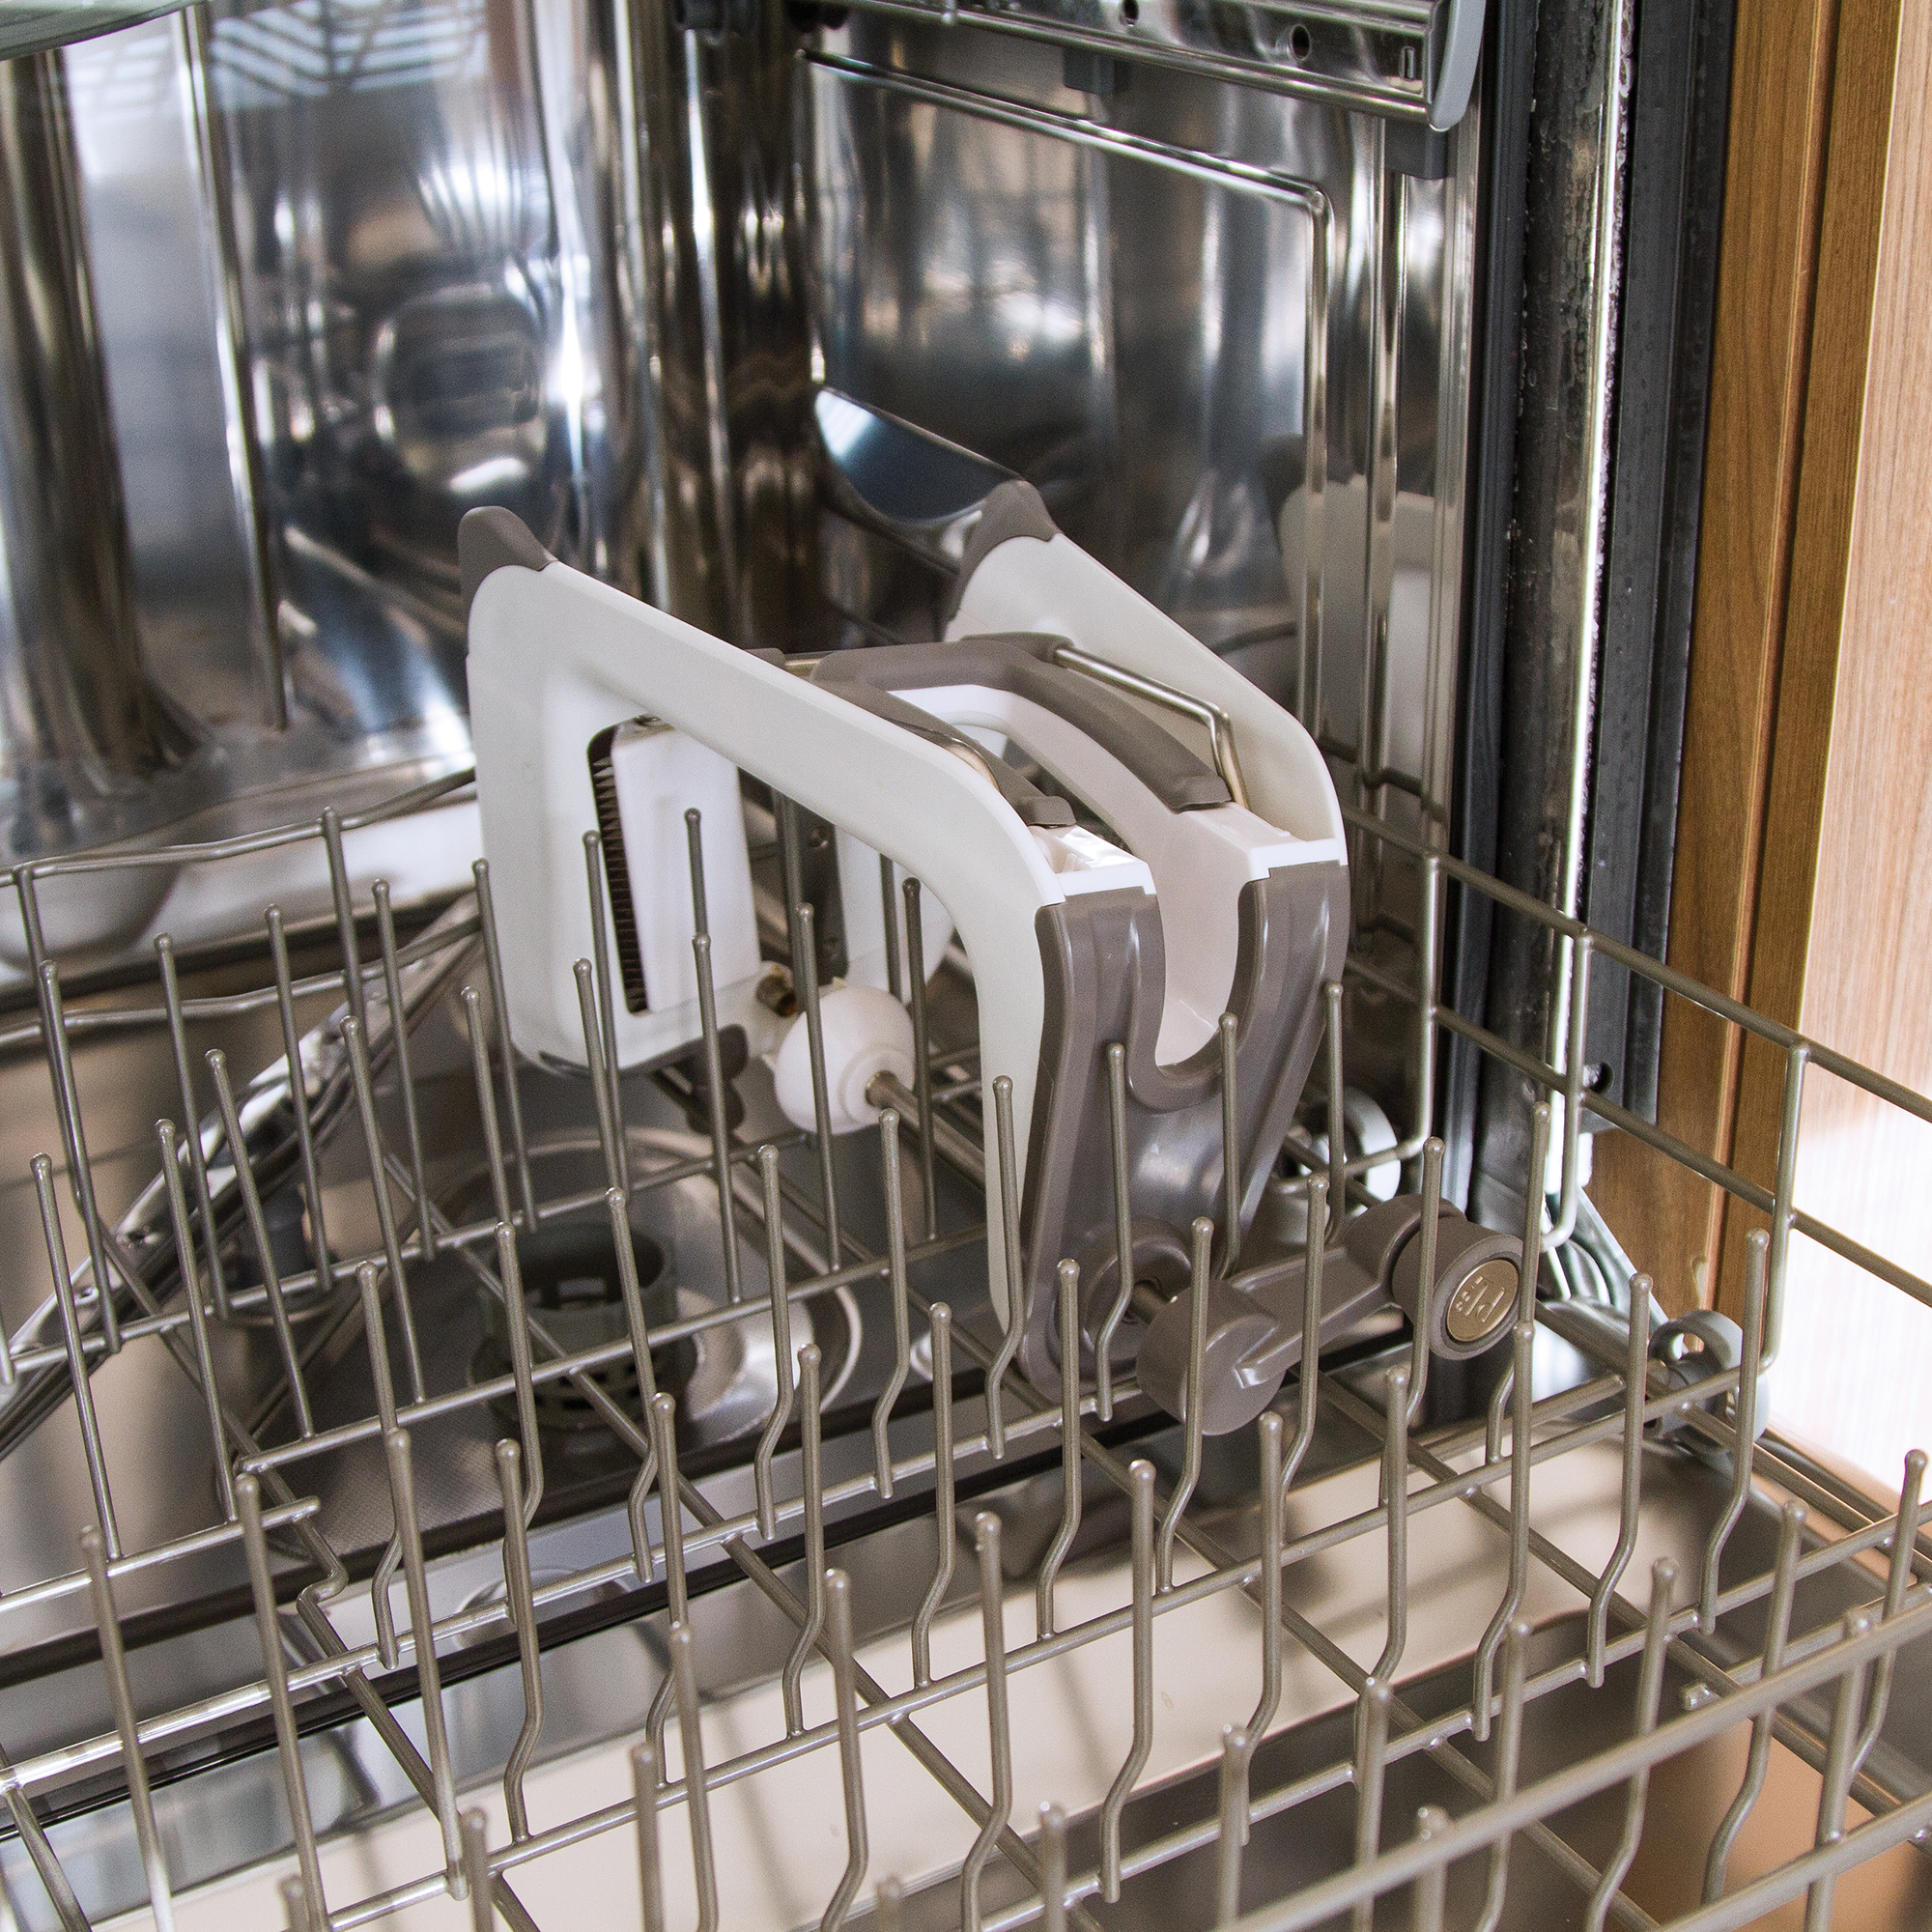 PL8-1099_inset(cleaning 7)Dishwasher.jpg